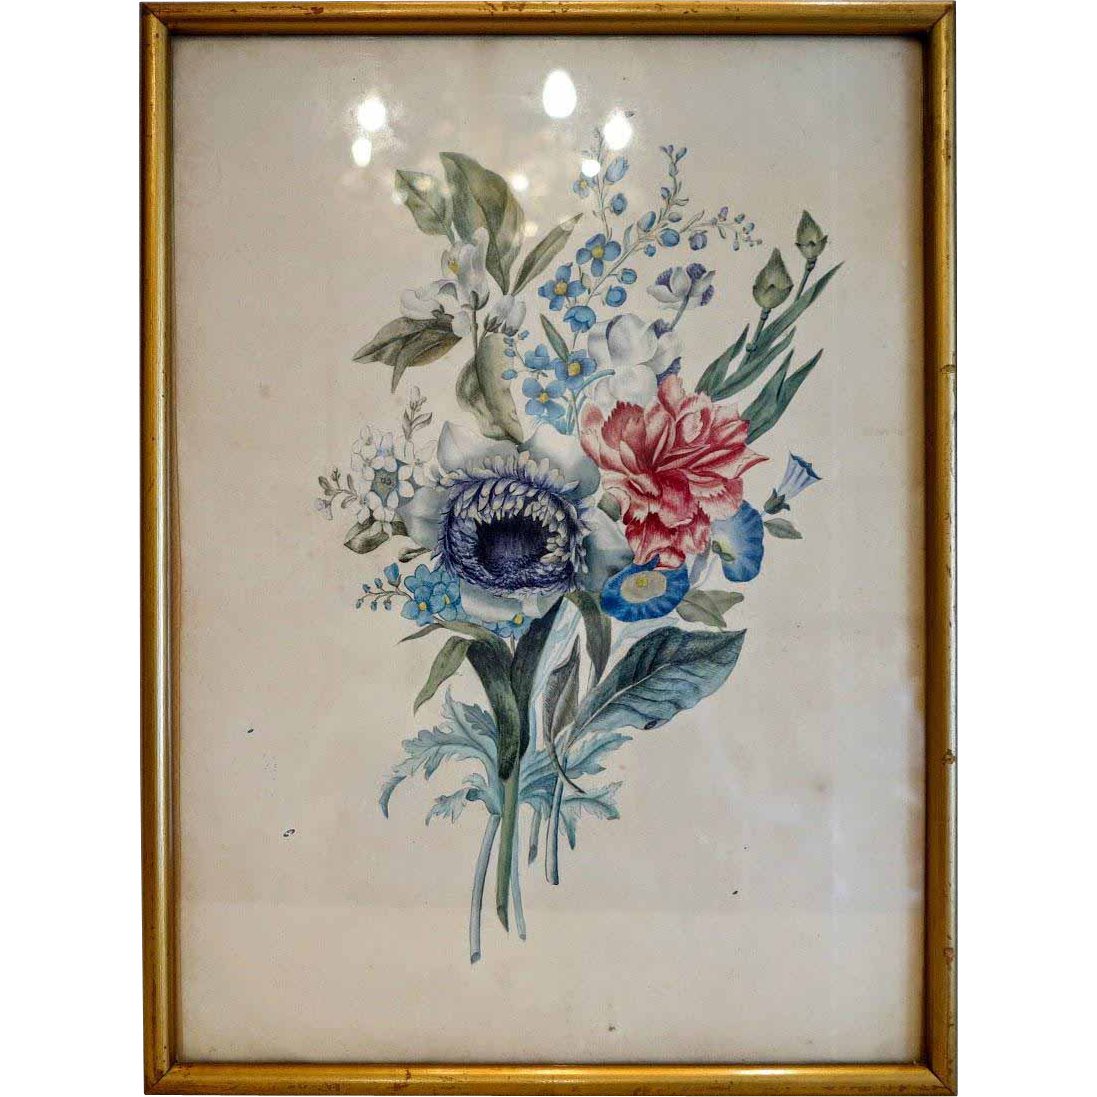 Antique water color painting depicting flowers, 19th century